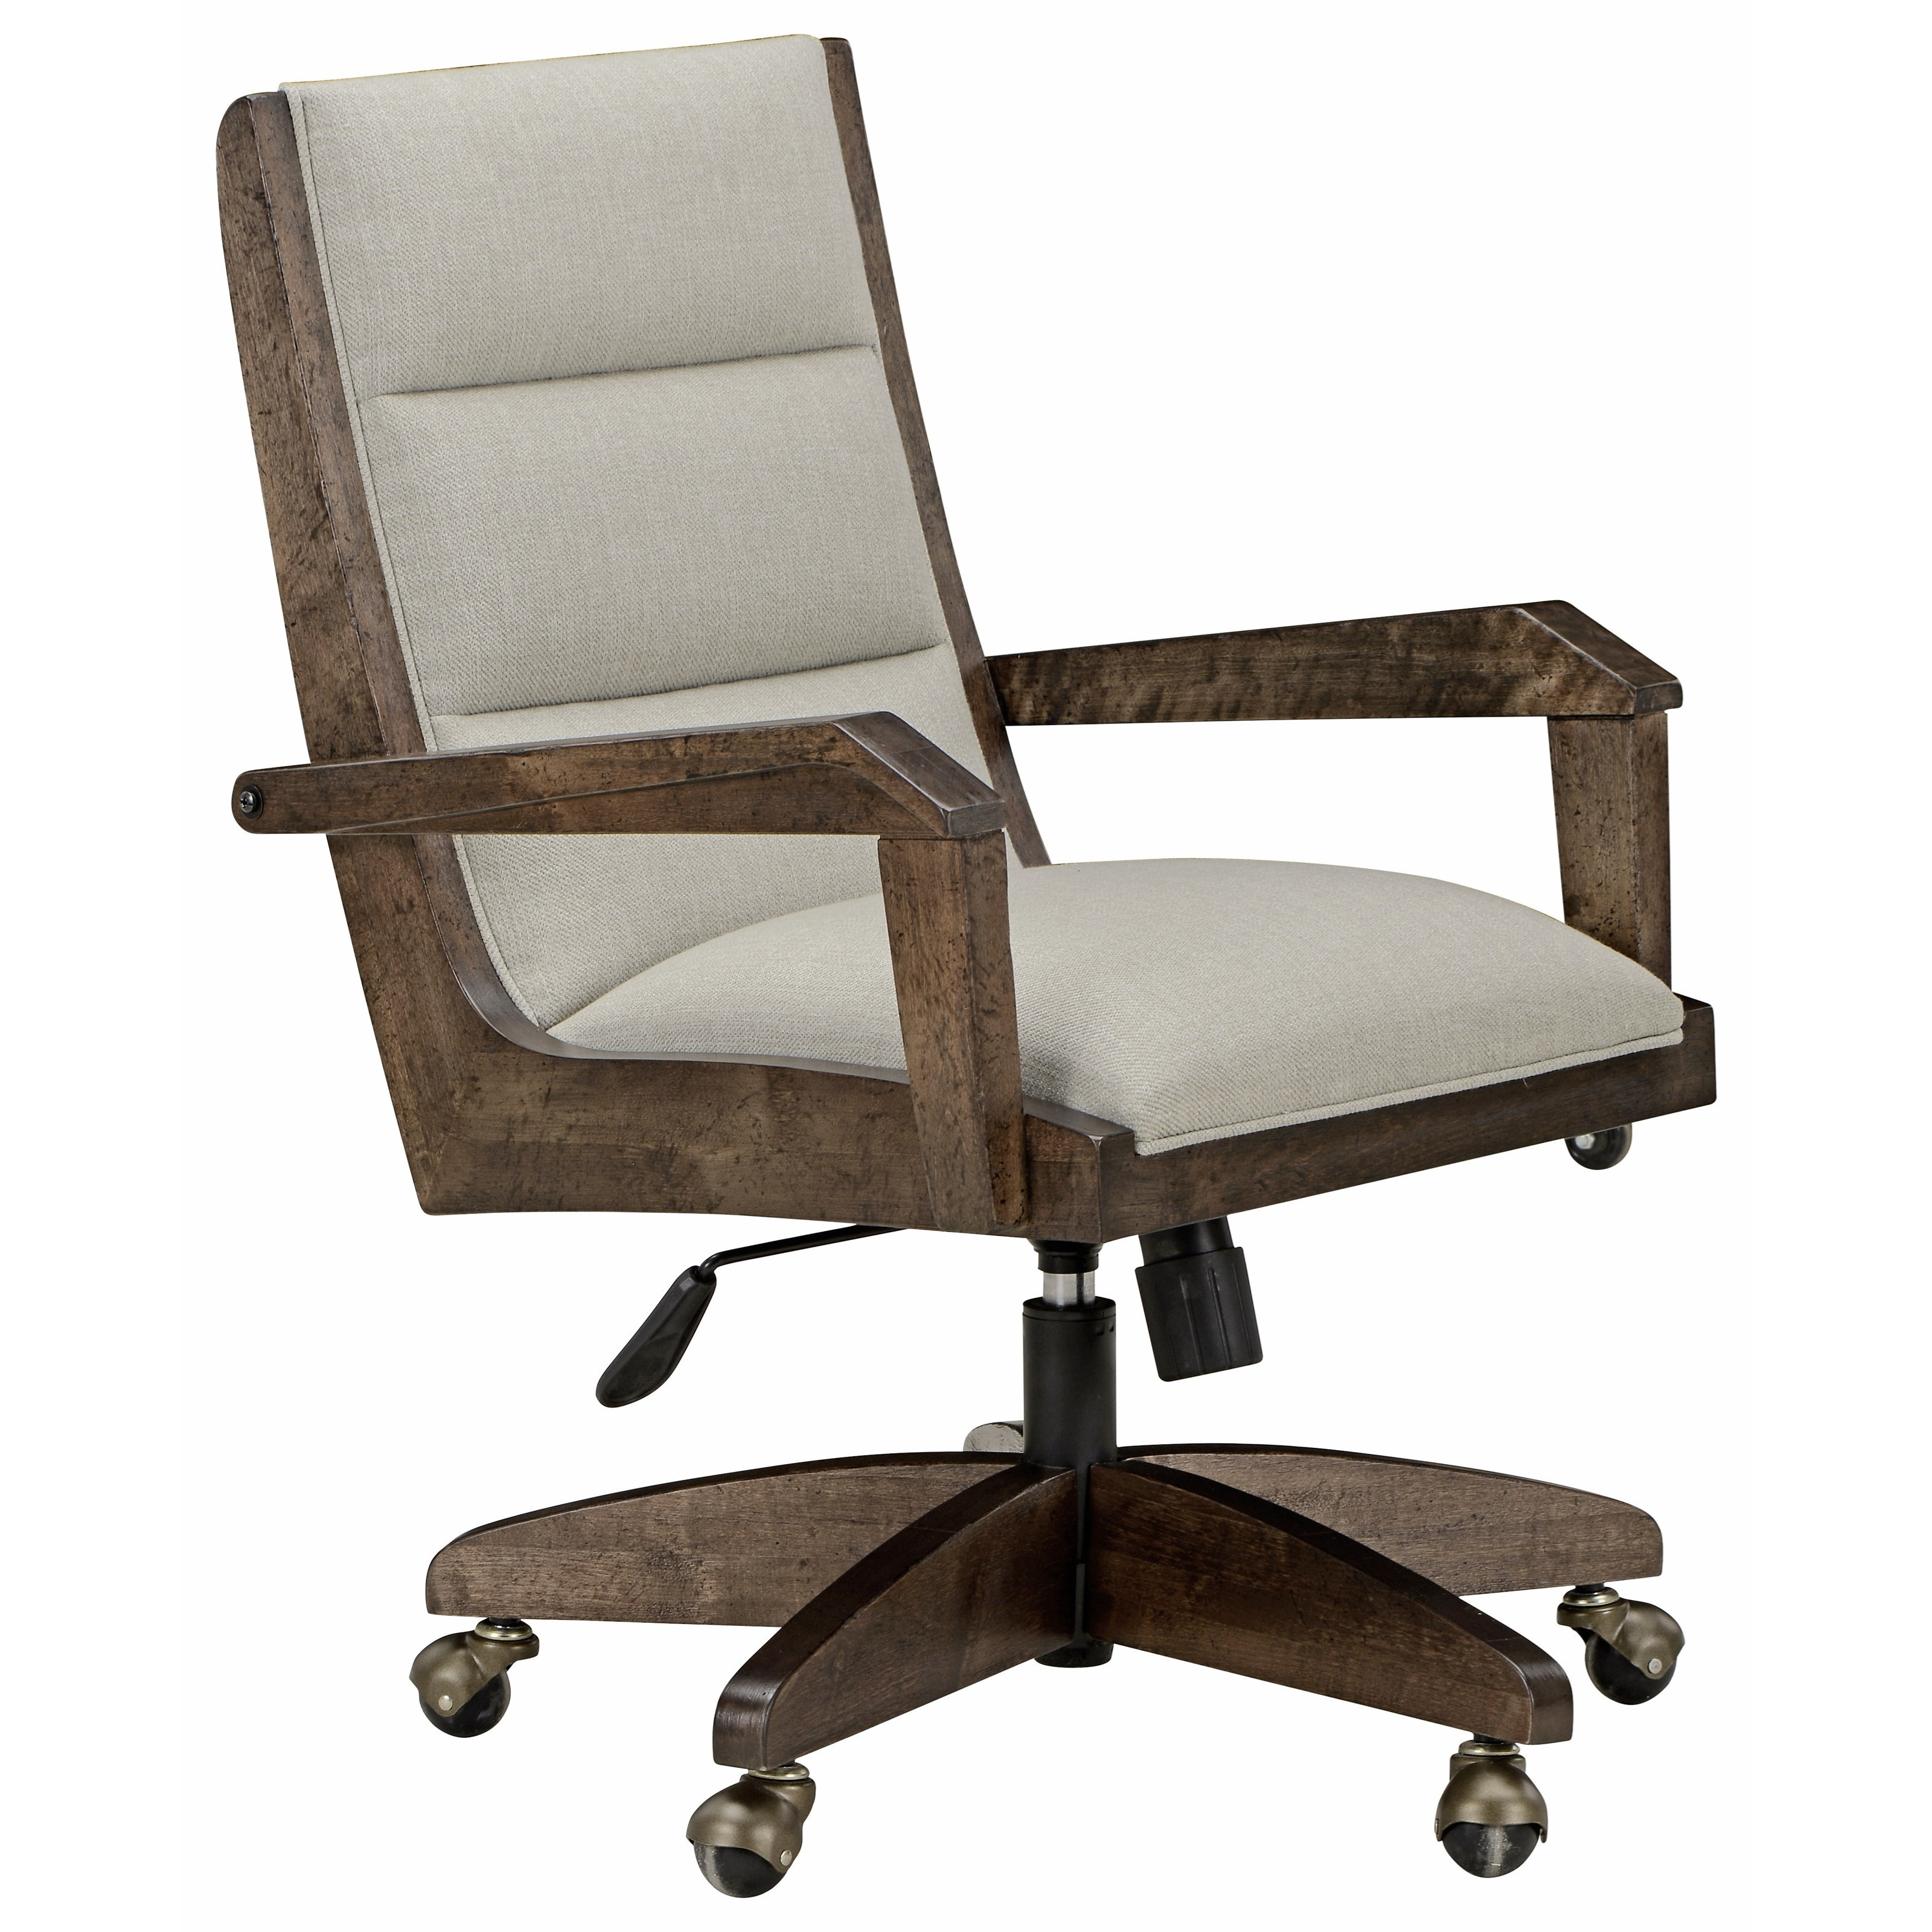 American Chapter Benchwork Desk Chair by A.R.T. Furniture Inc at Home Collections Furniture